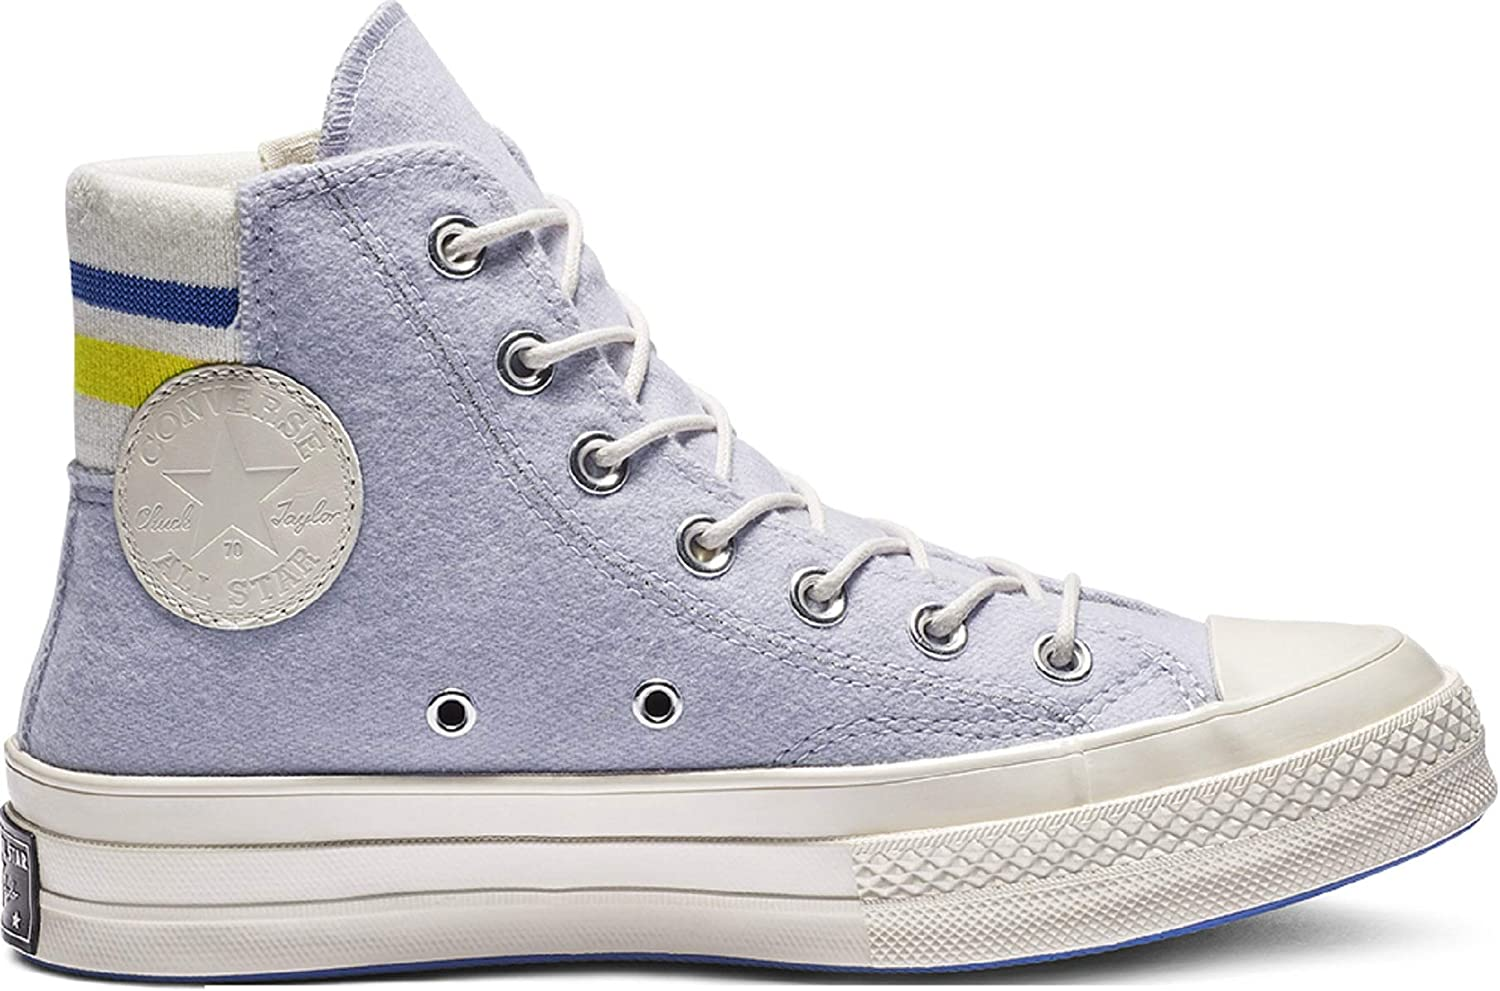 Converse Chuck 70 HI Oxygen Unisex-Adults Fashion-Sneakers 163365C